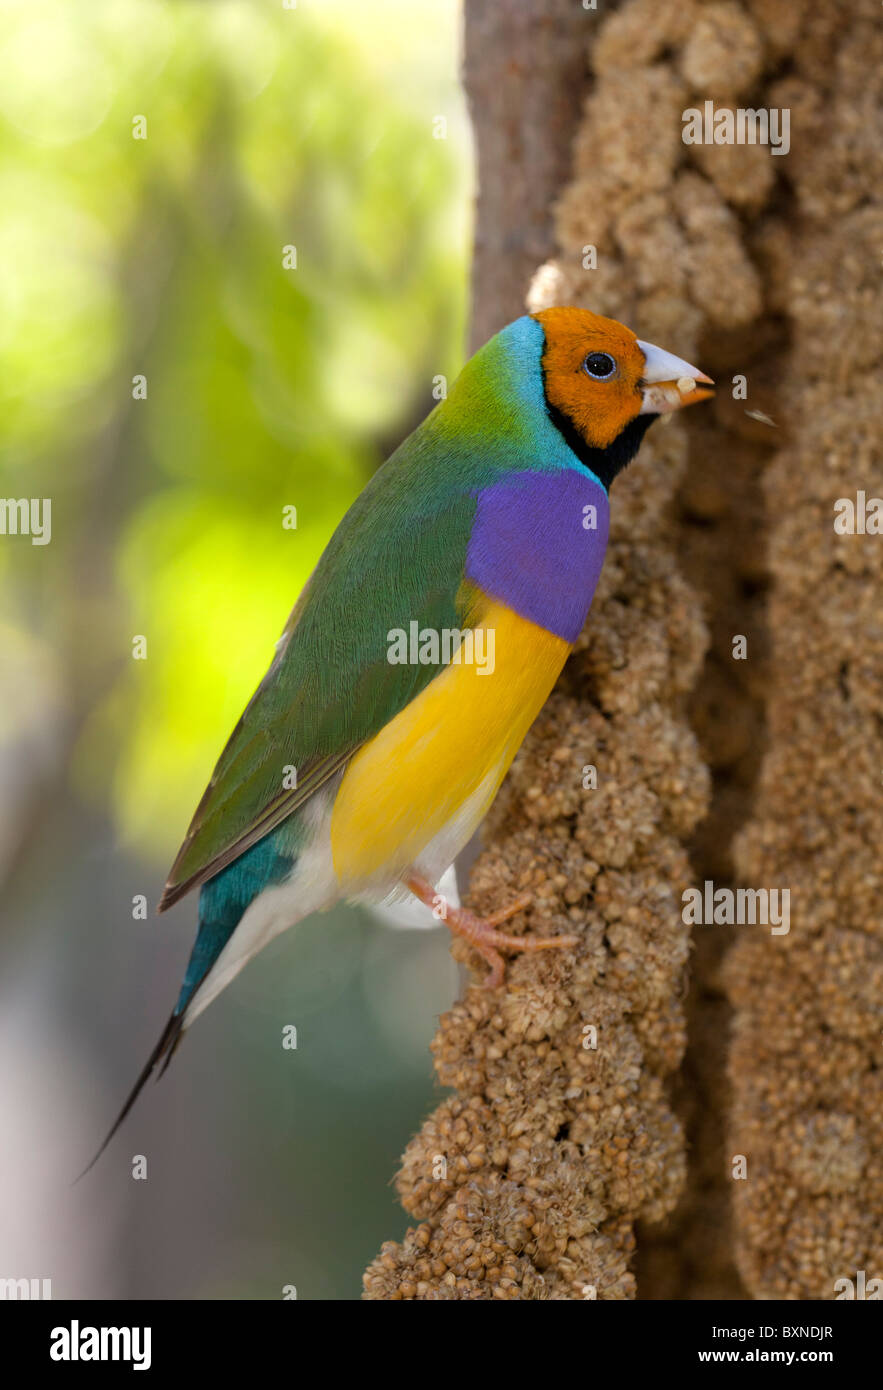 Colorful Lady Gouldian Finch perched in a tree - Stock Image